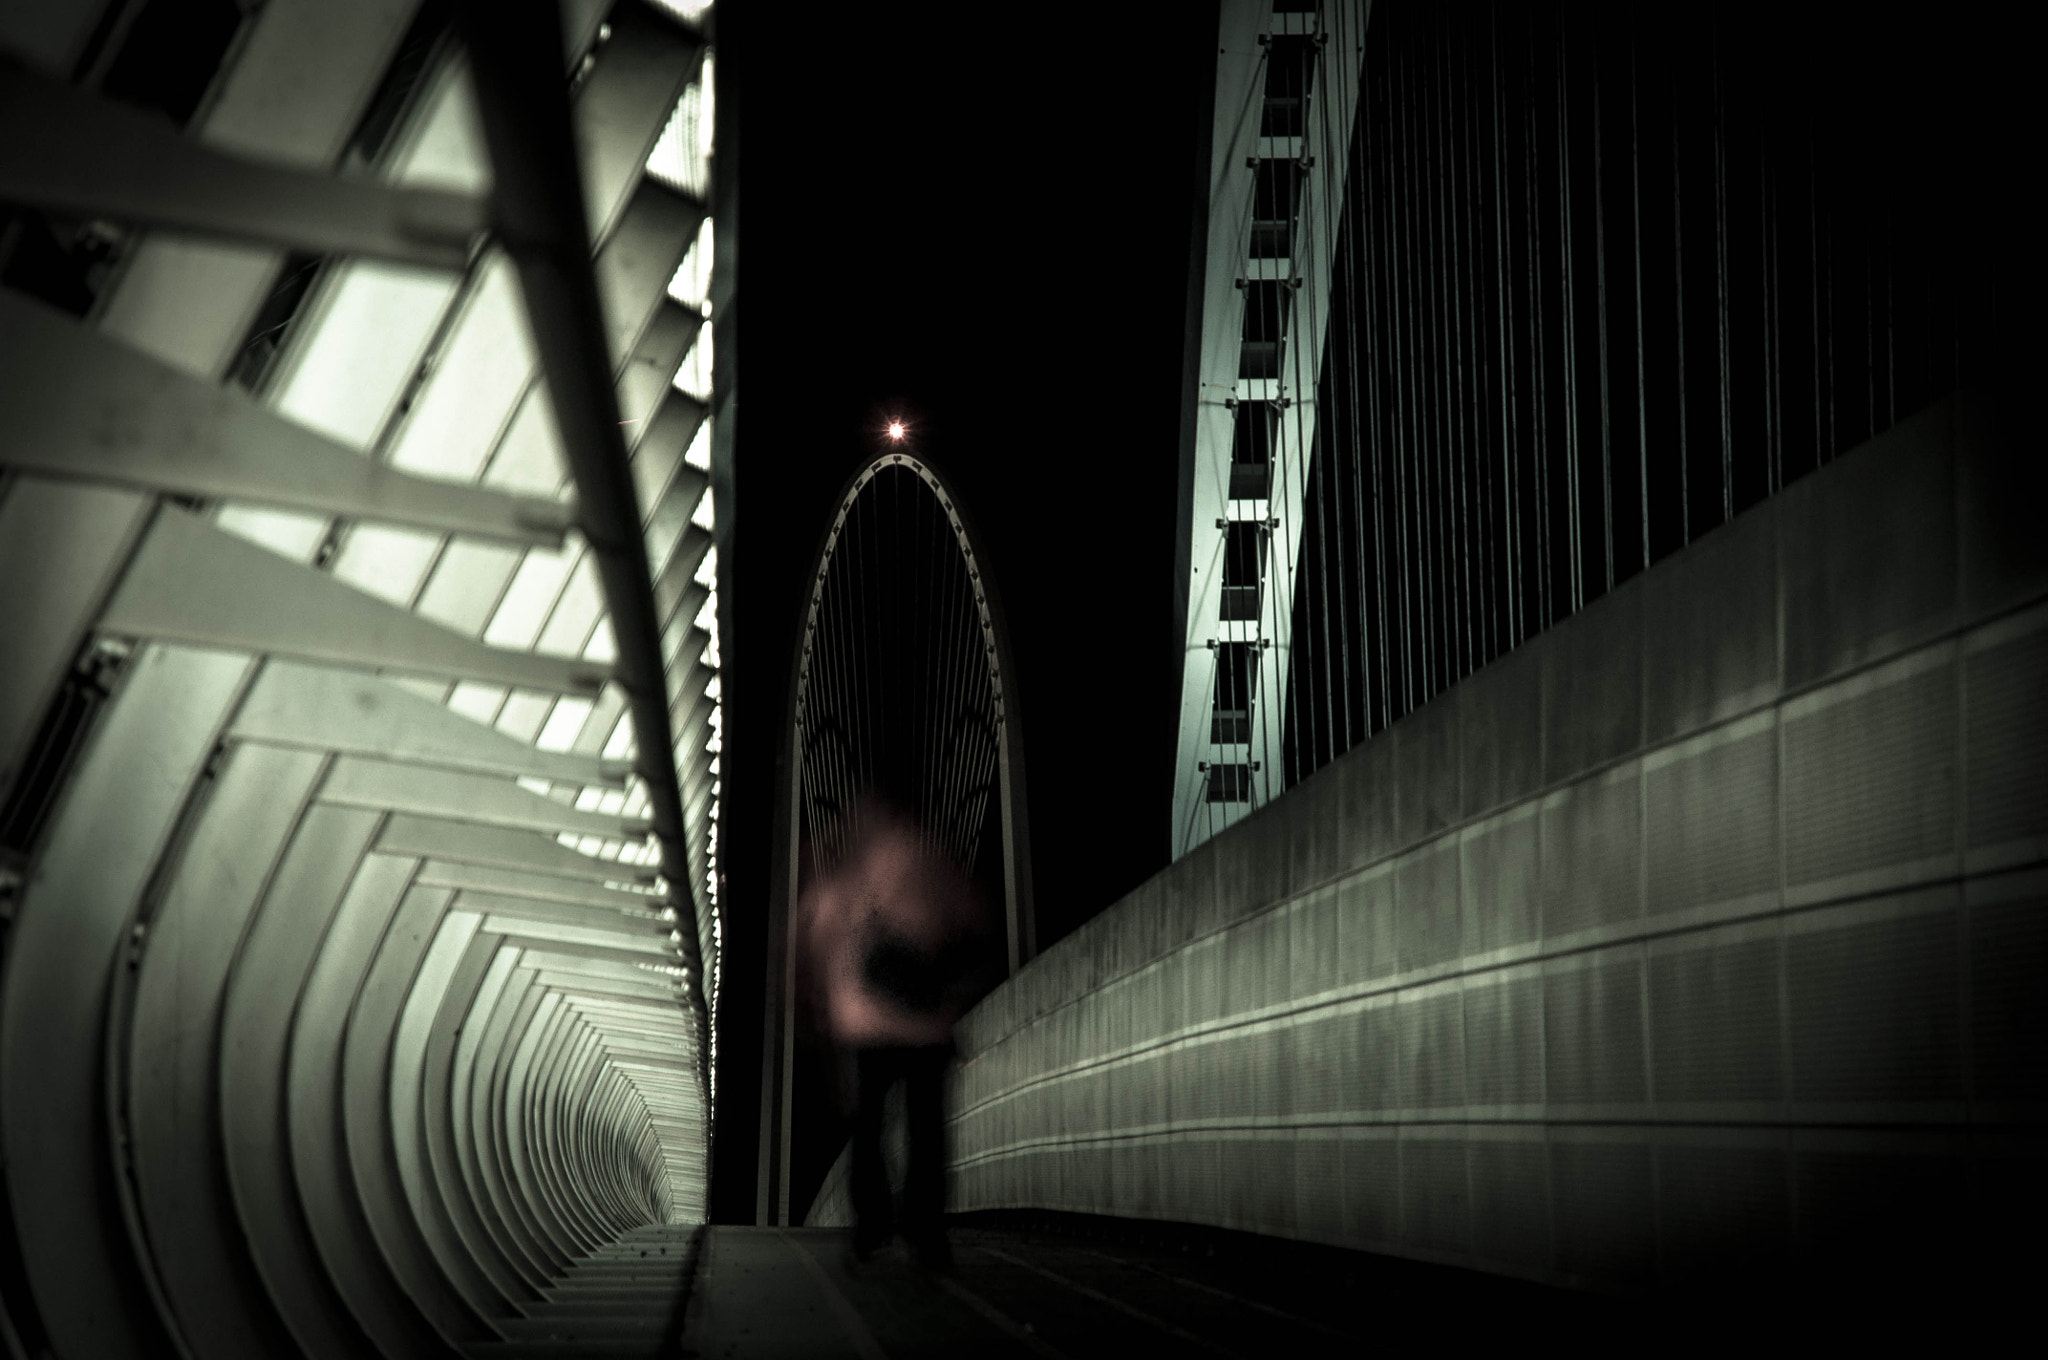 Photograph There is a ghost on Calatrava's Bridge by Michele Fornaciari on 500px